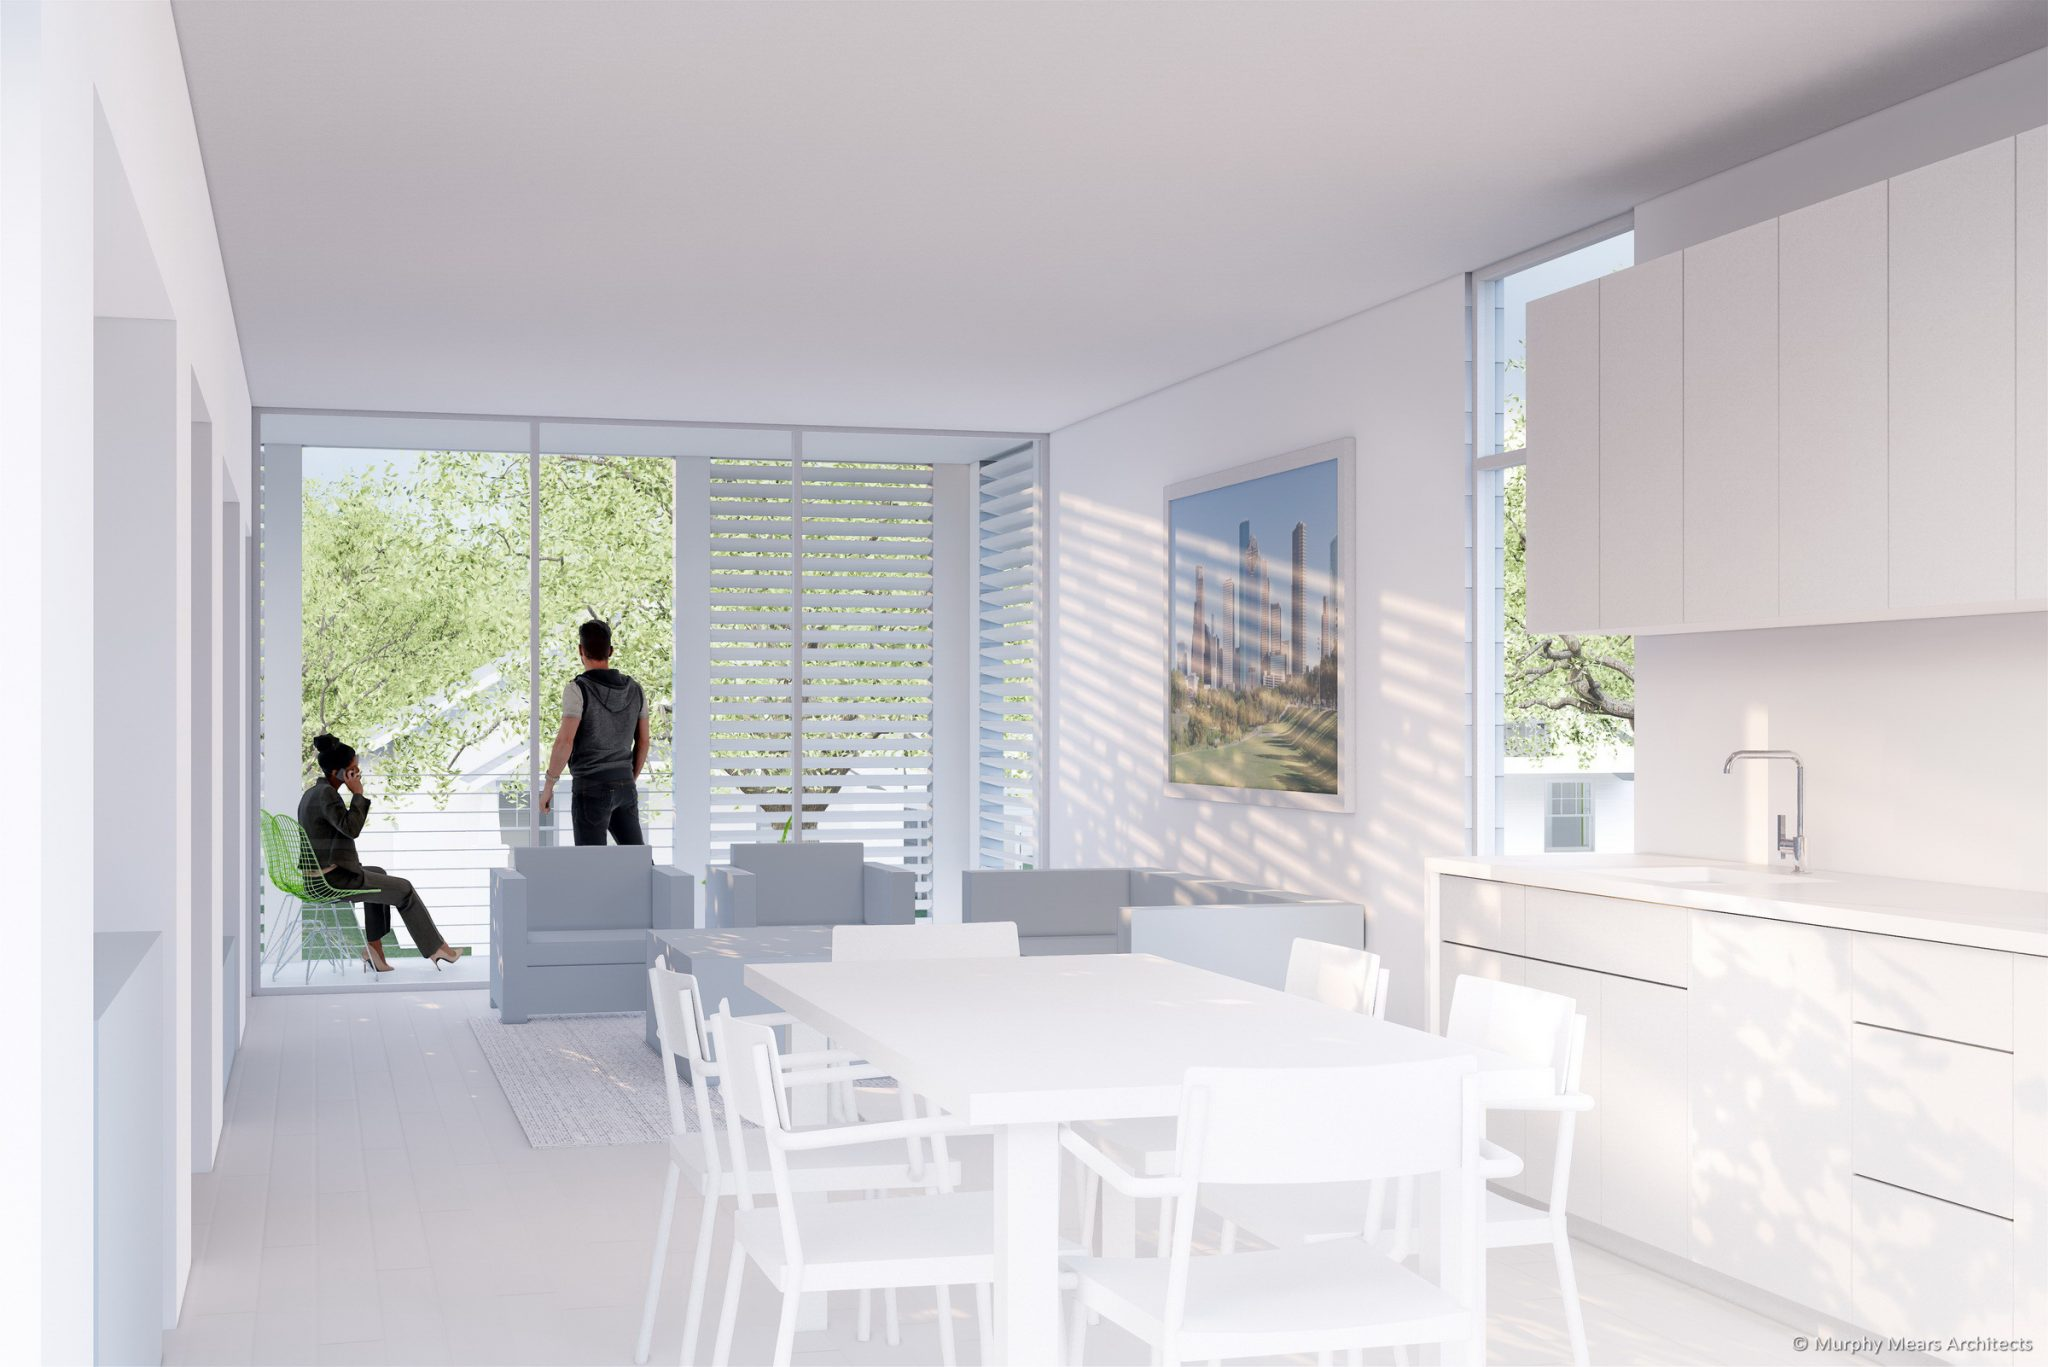 Affordable / Sustainable Housing Competition - City of Houston and AIA - Complete The Community - Interior Living Space.